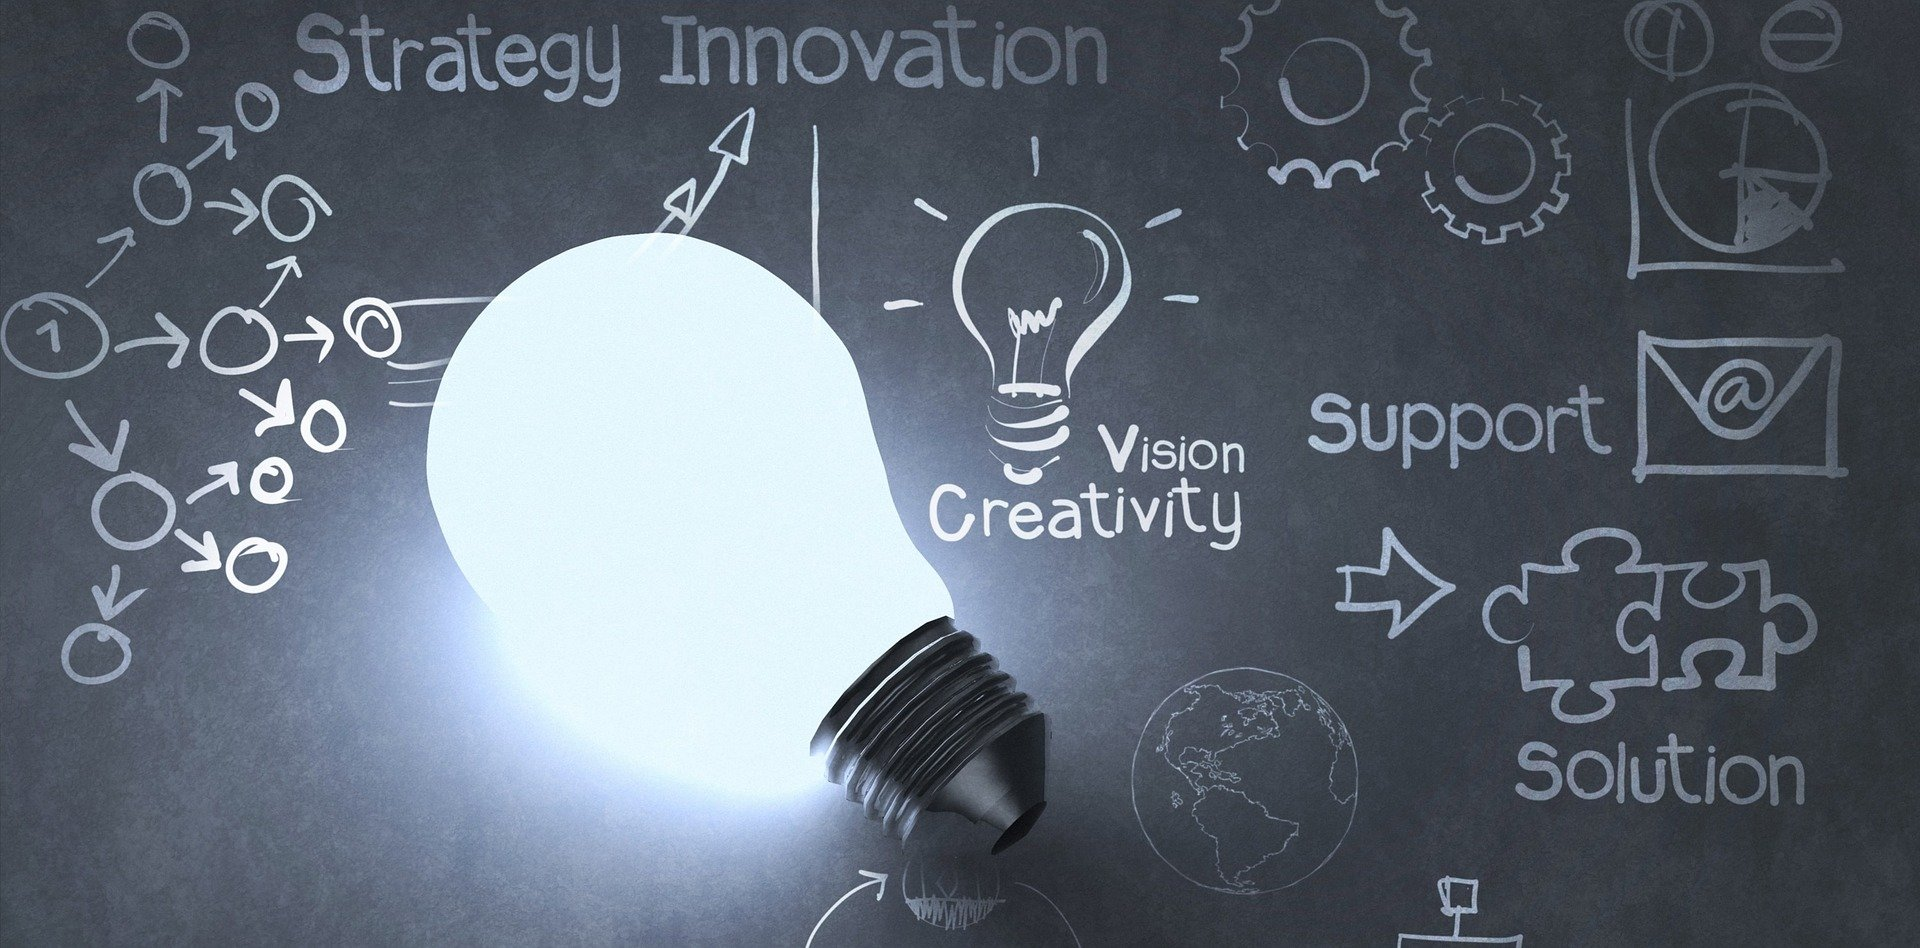 Header image of a lit lightbulb resting on a chalkboard with words about innovation and creativity written sporadically